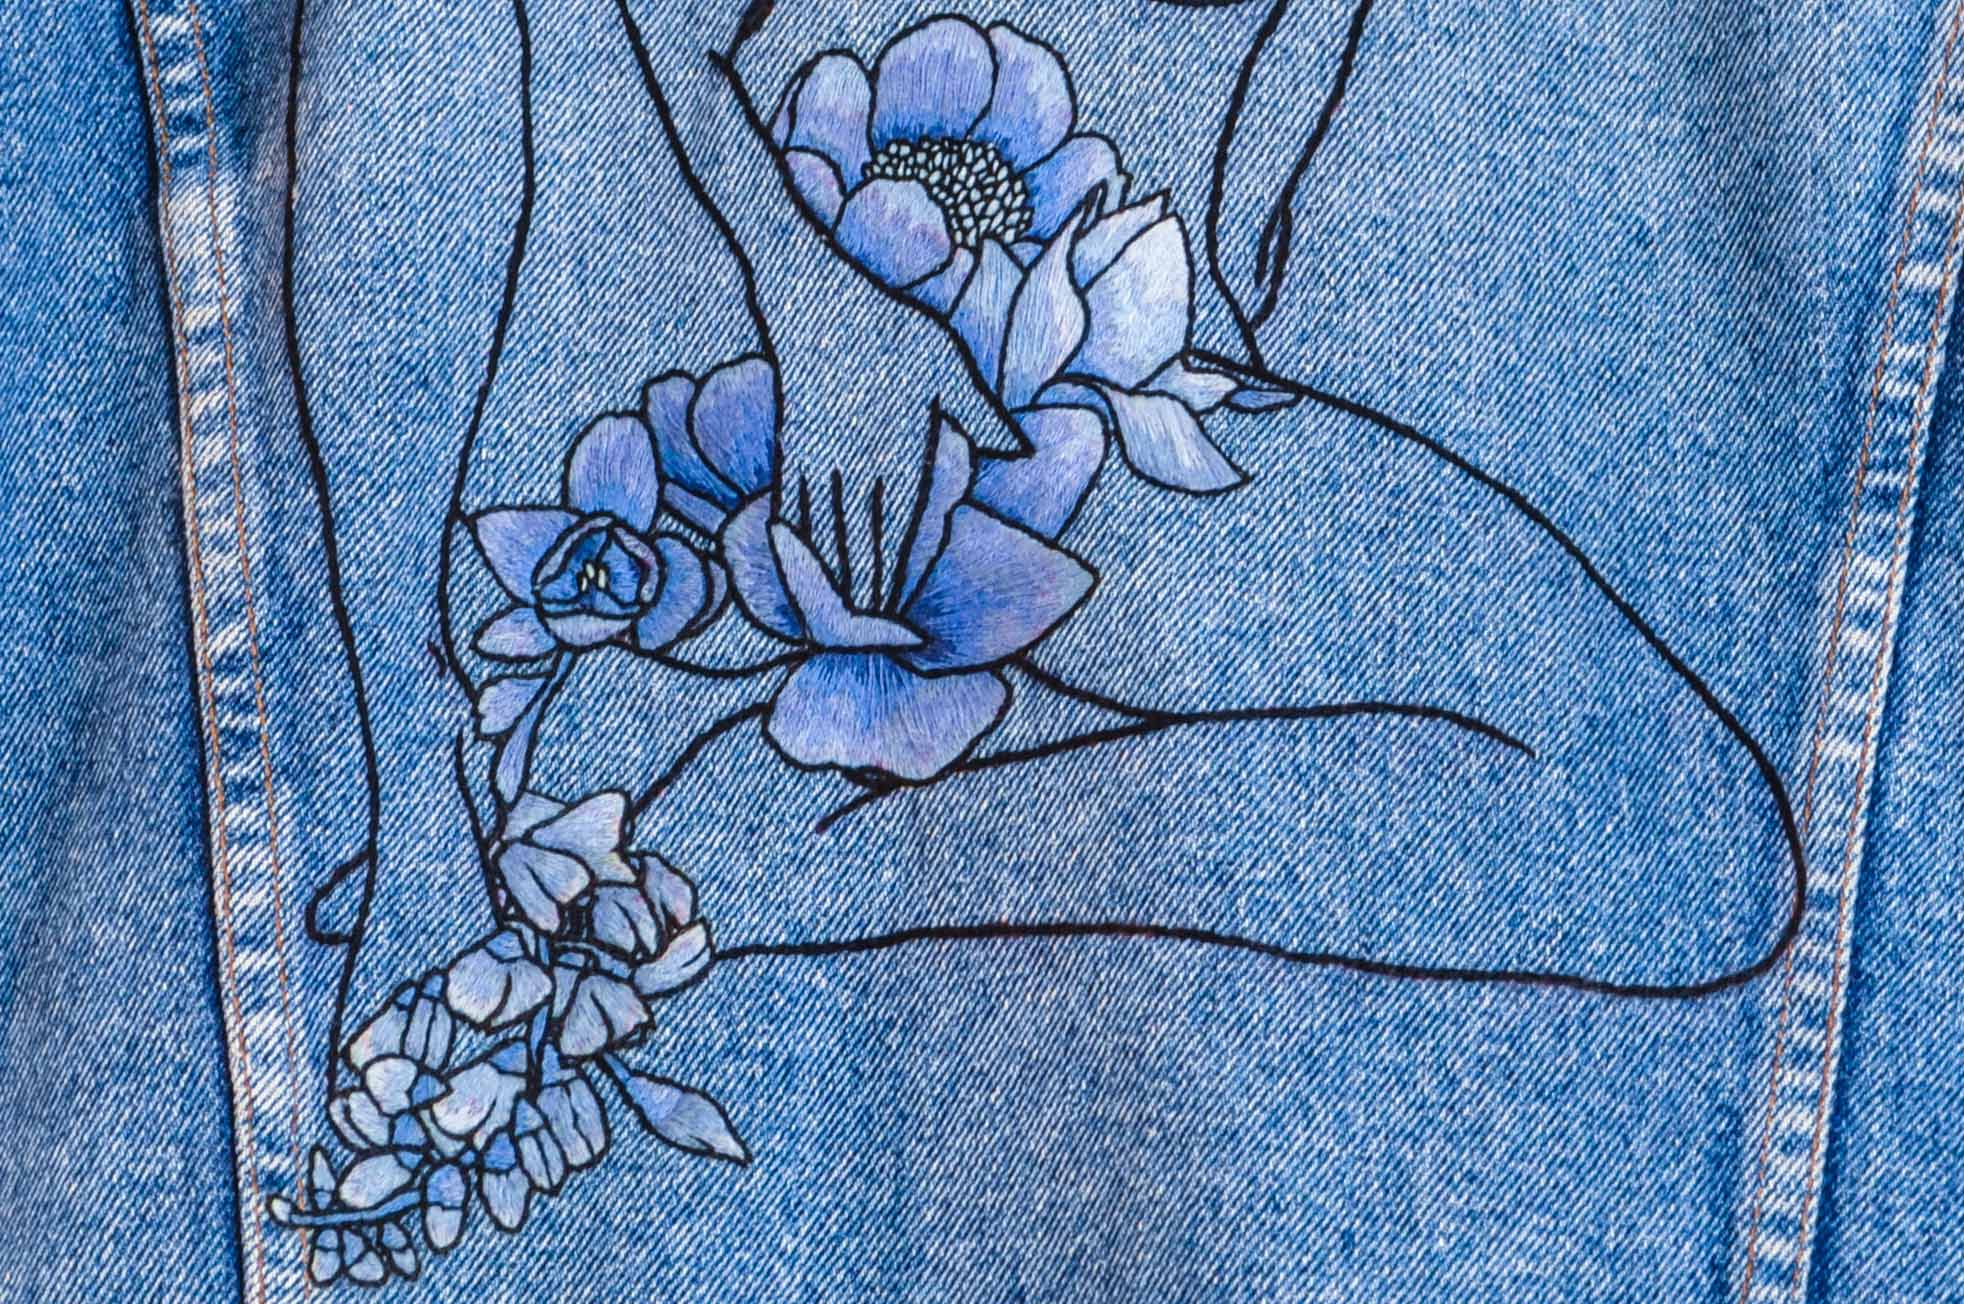 arianehaas_illustration_embroidery_07.jpg